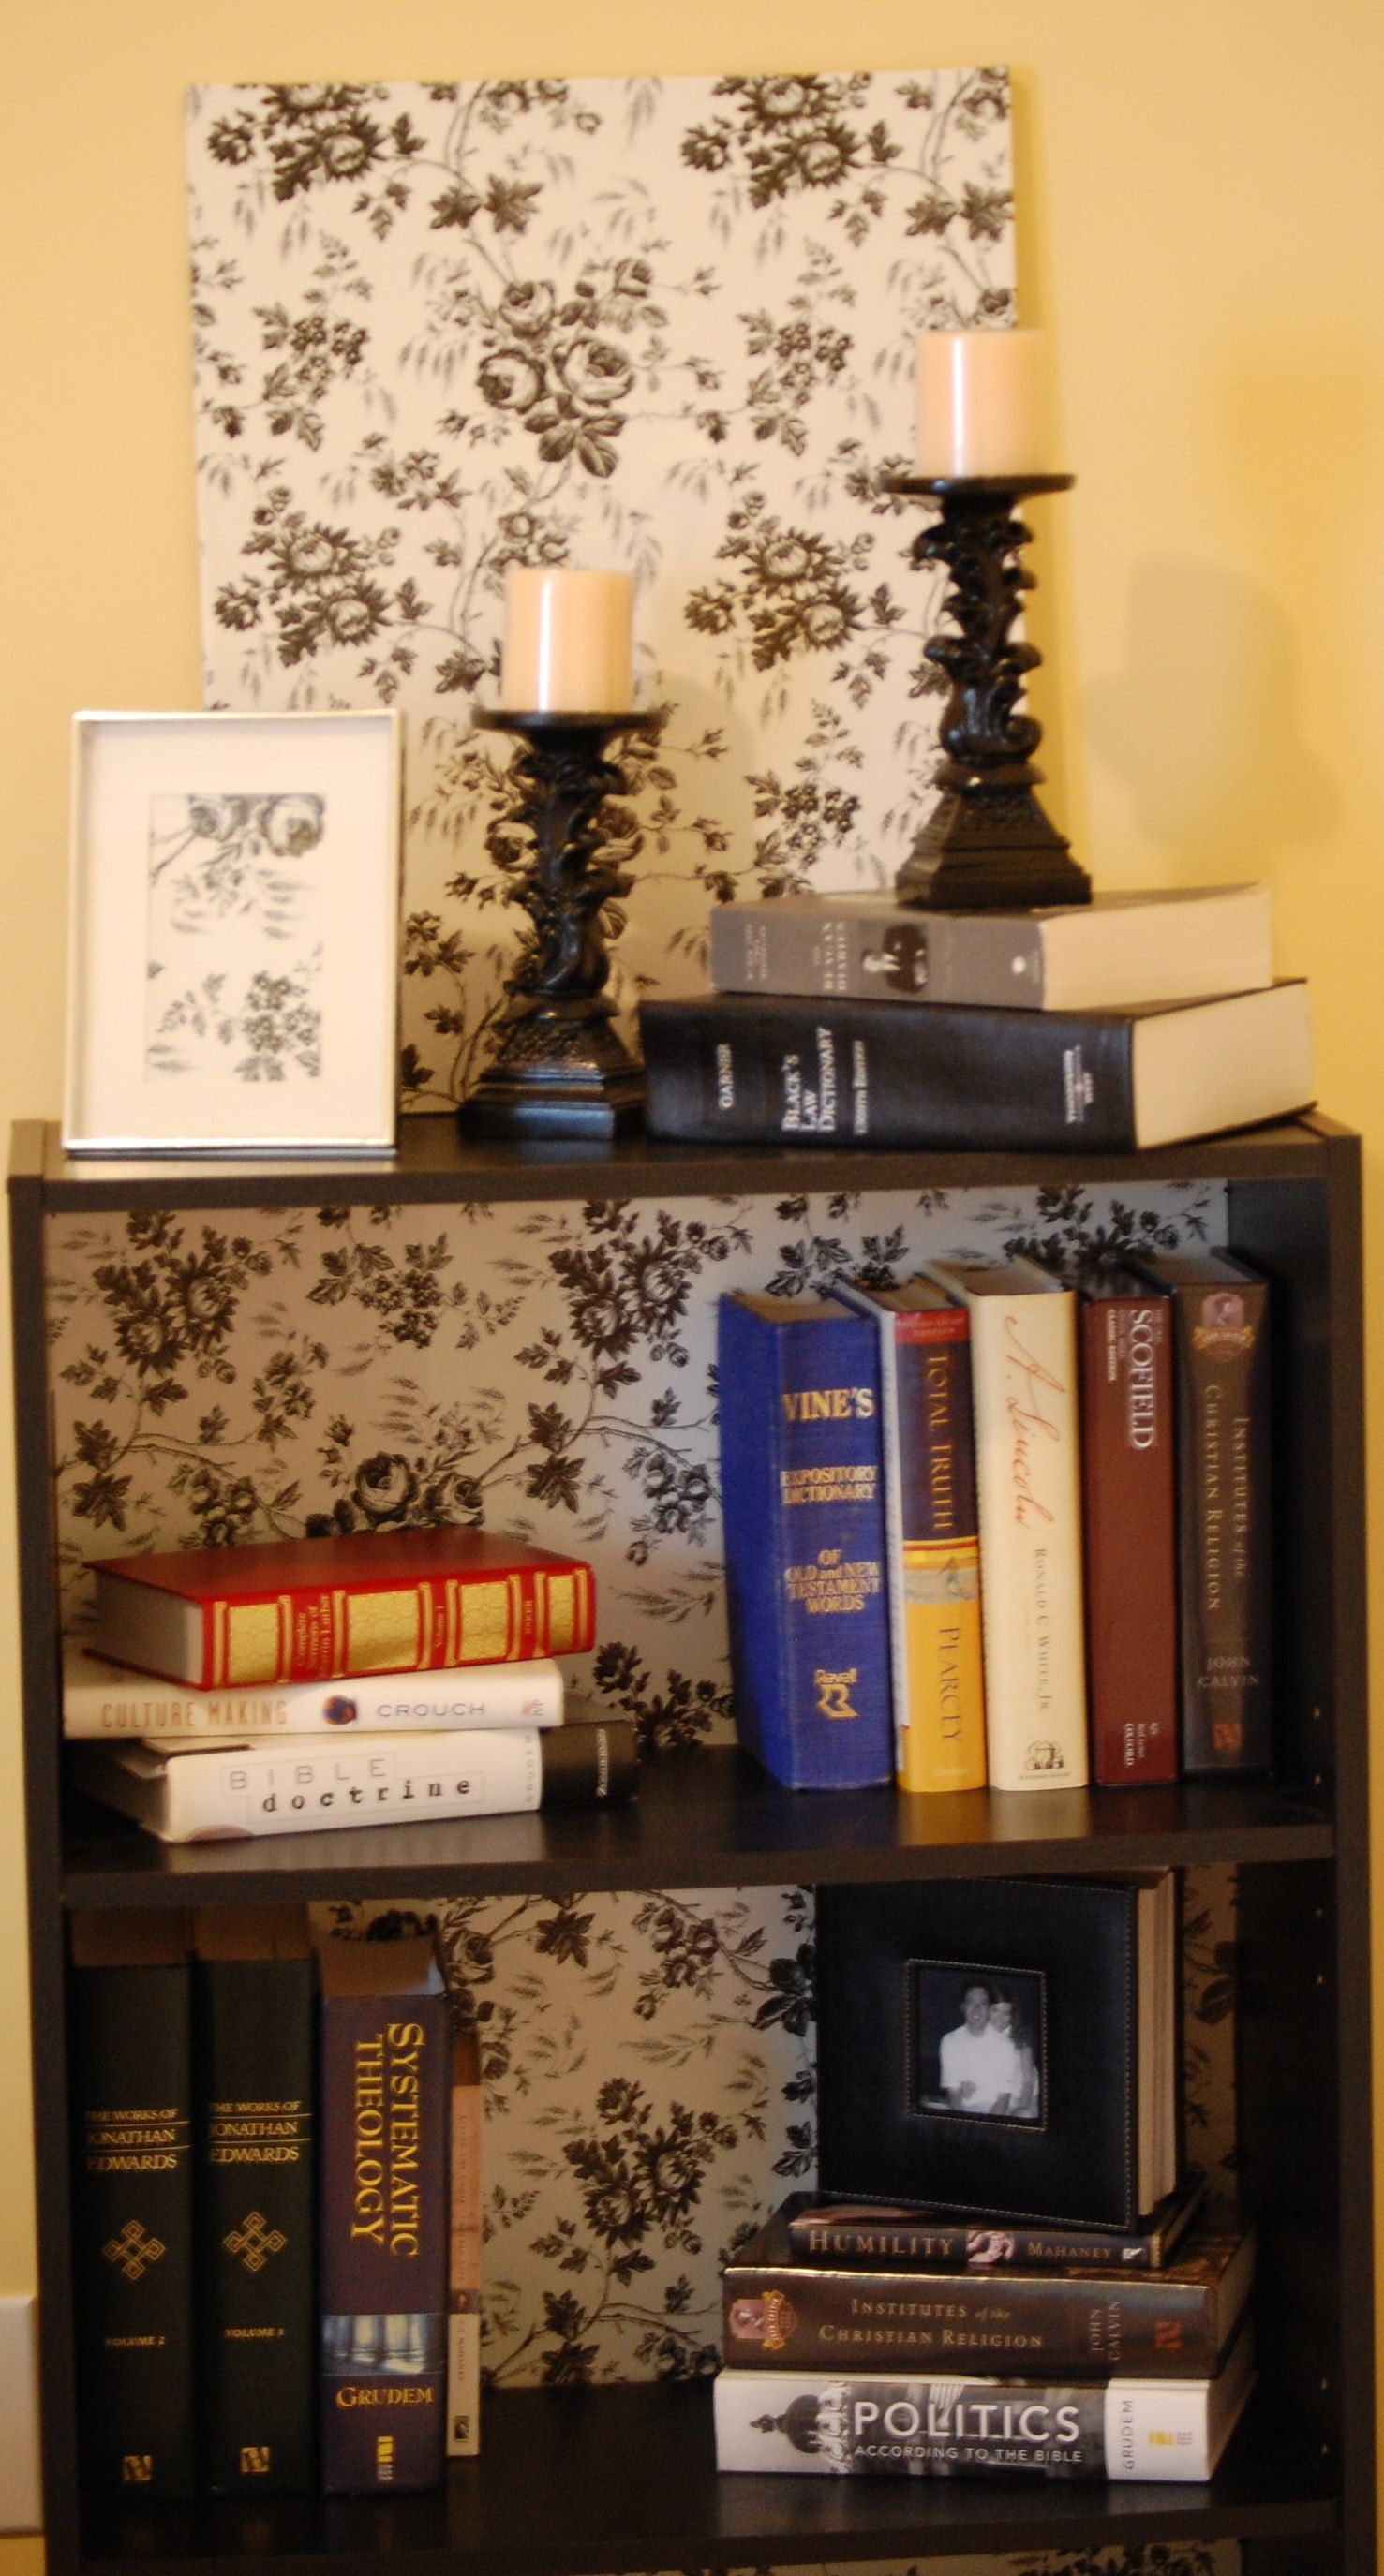 Cabinet Liners To Add Interest To Bookshelf  Things To Do Prepossessing Kitchen Cabinet Liners Decorating Inspiration